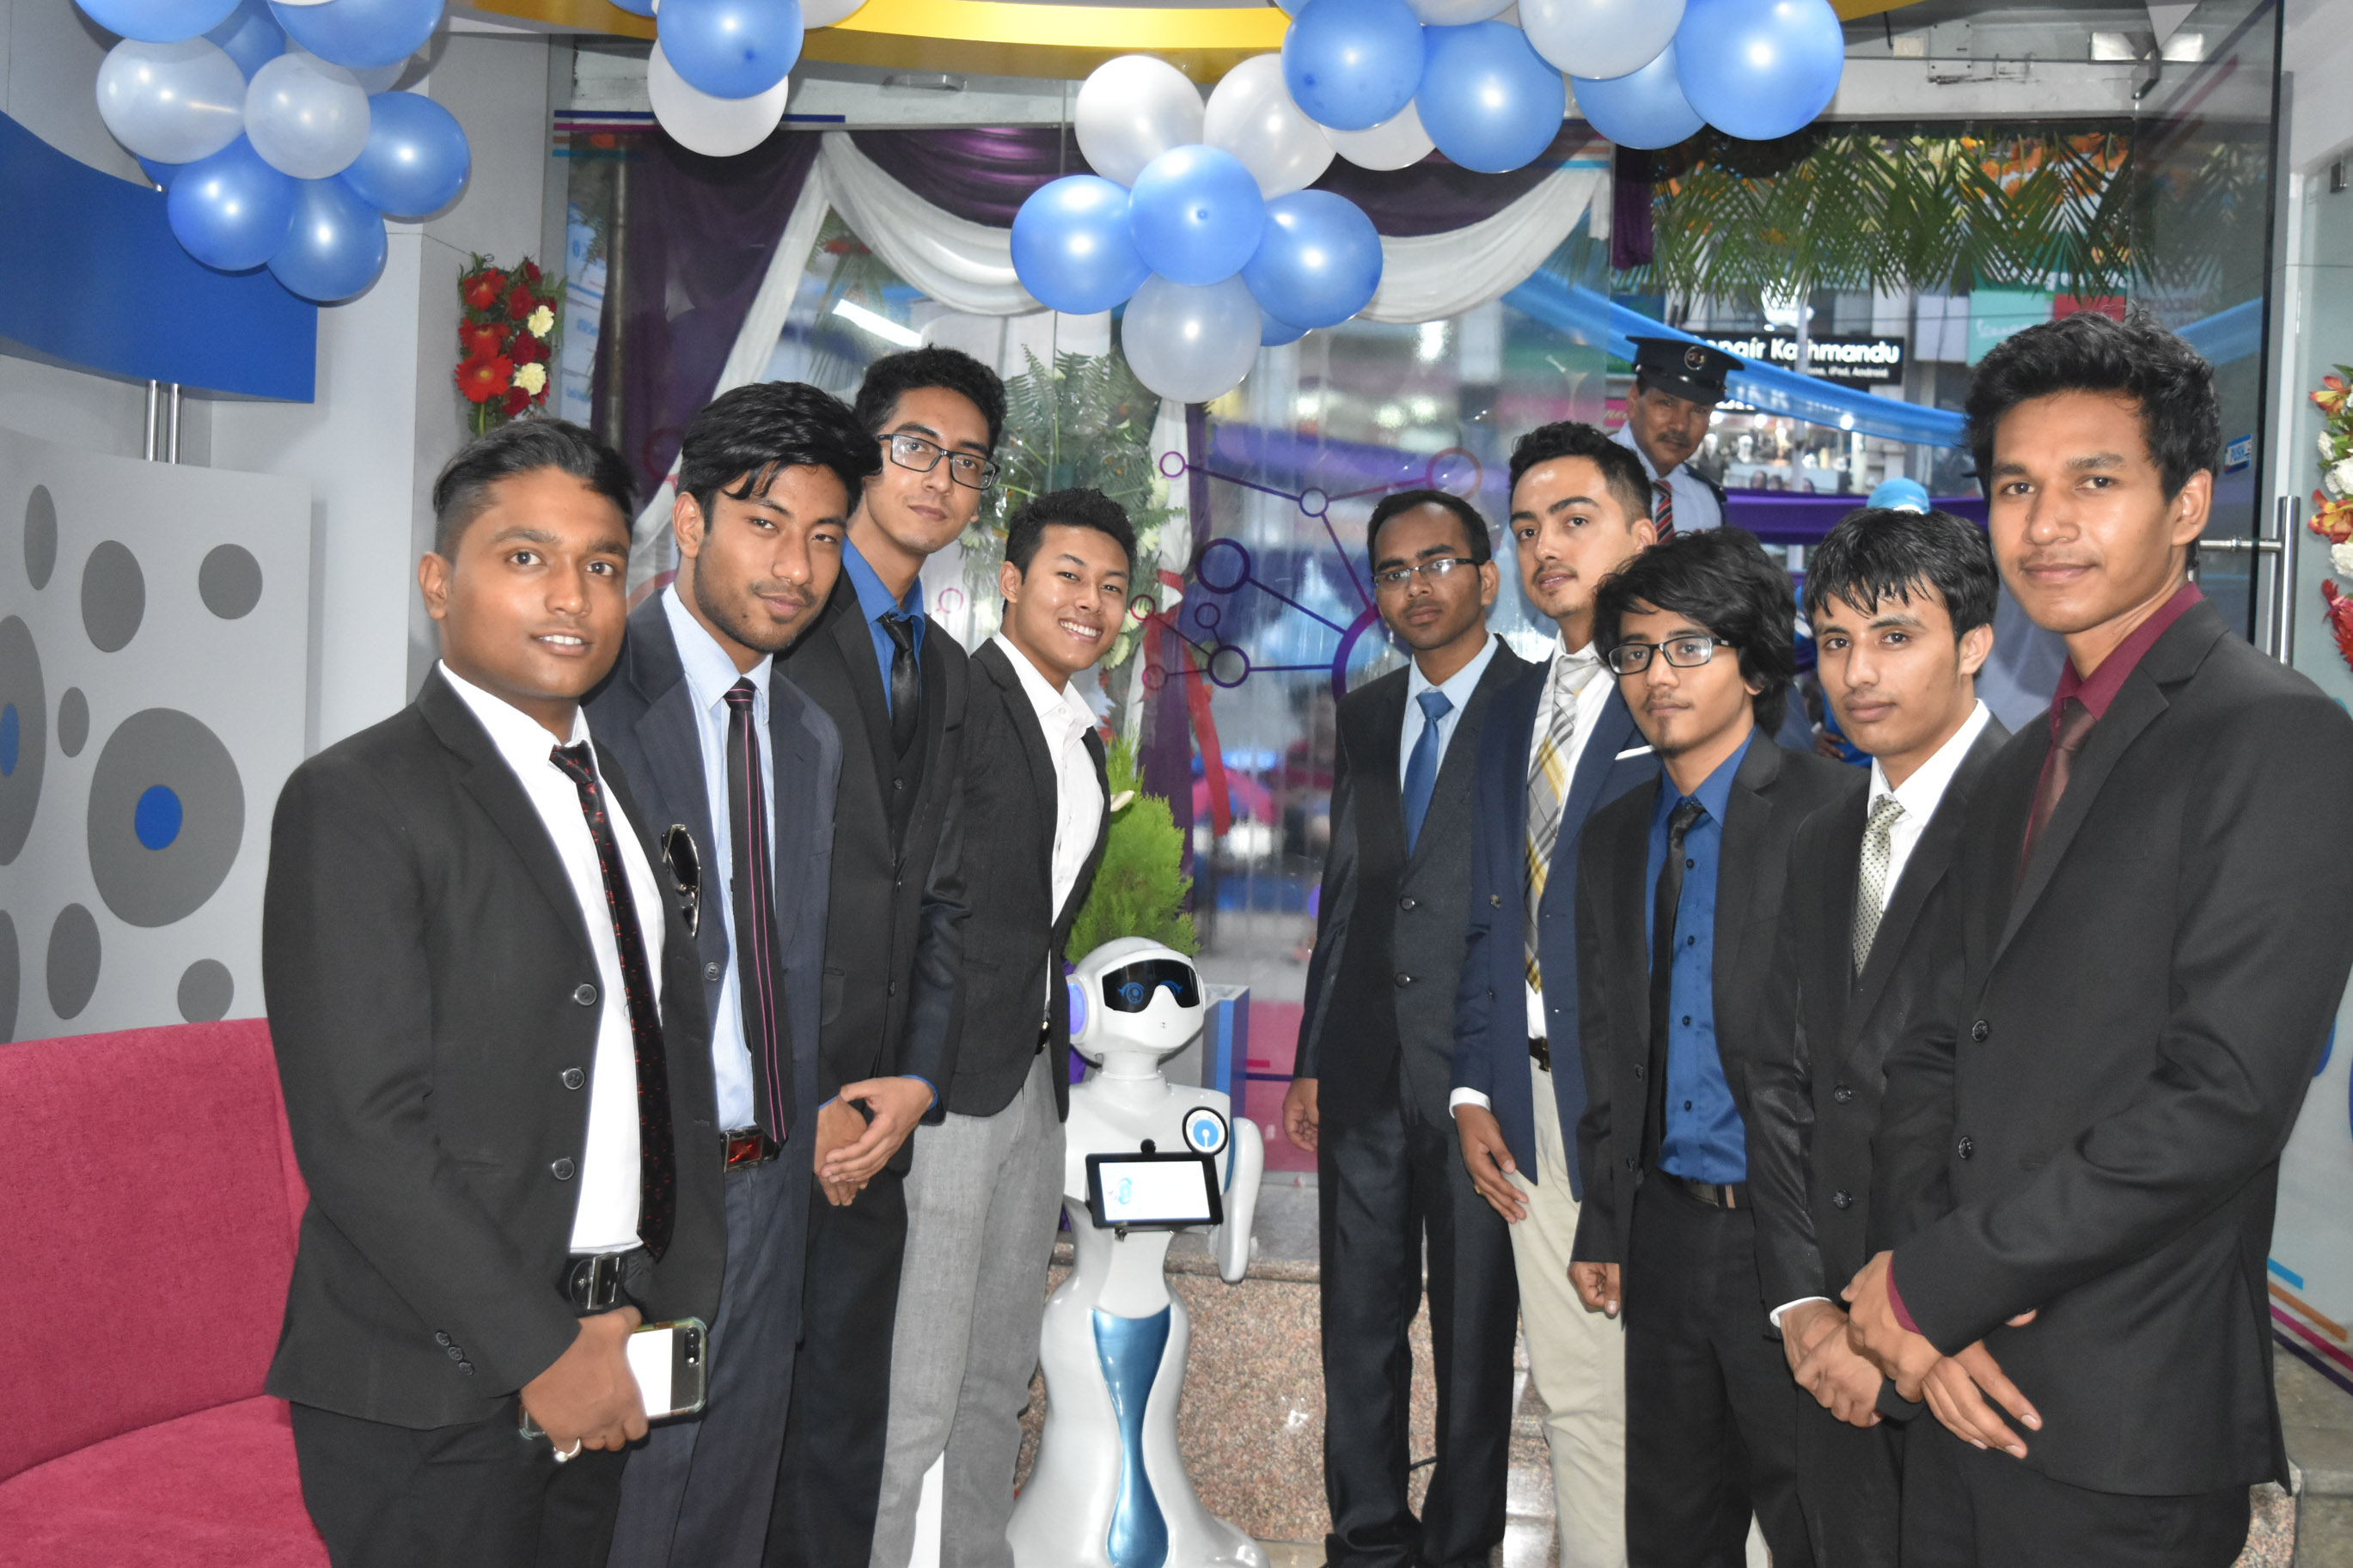 Team Paaila with humanoid robot #Pari